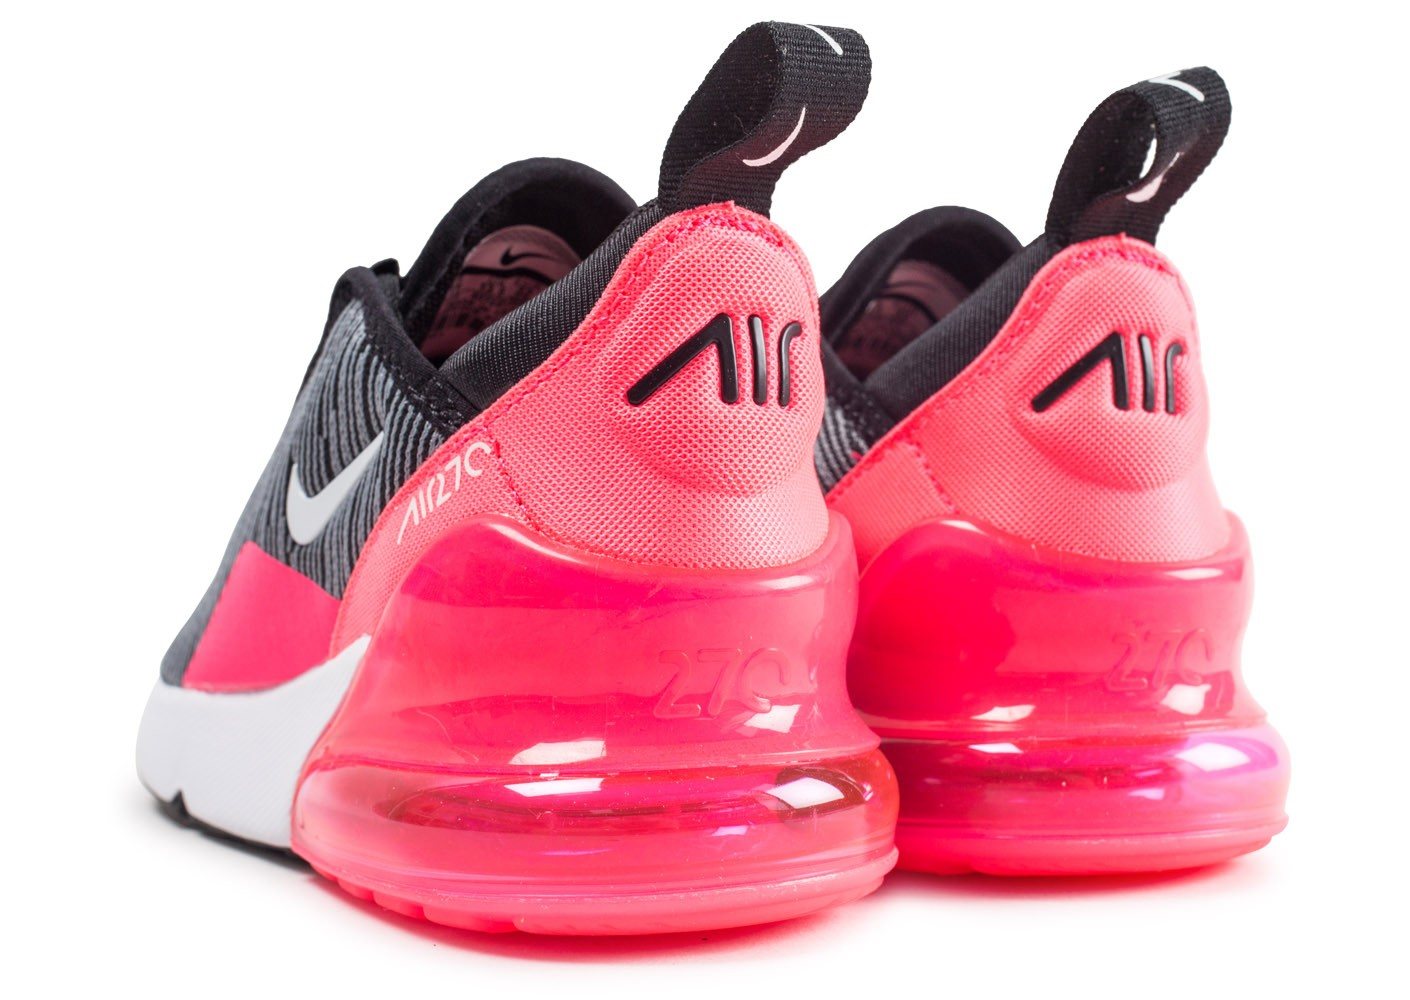 nike air max 270 noire et rose enfant chaussures enfant. Black Bedroom Furniture Sets. Home Design Ideas